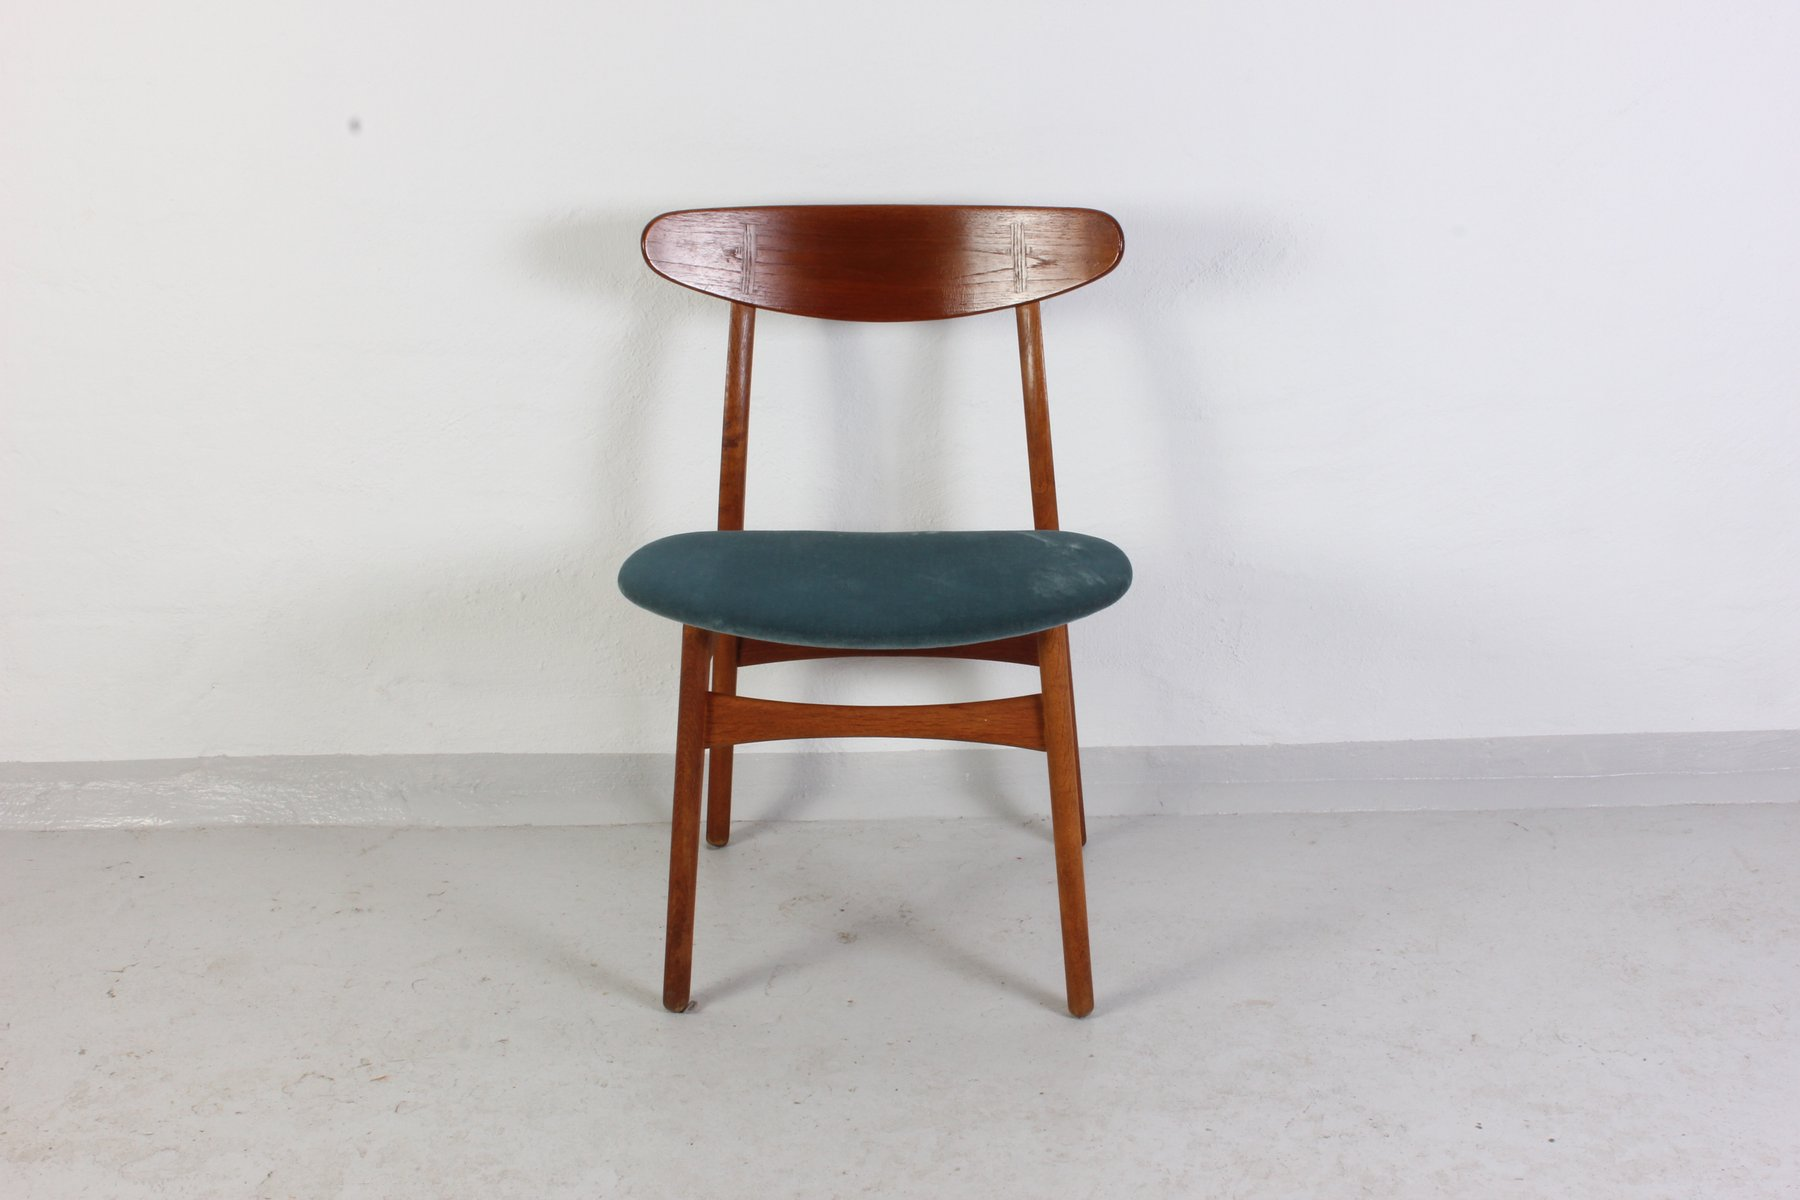 CH 30 Chair by Hans J Wegner for Carl Hansen & S¸n for sale at Pamono